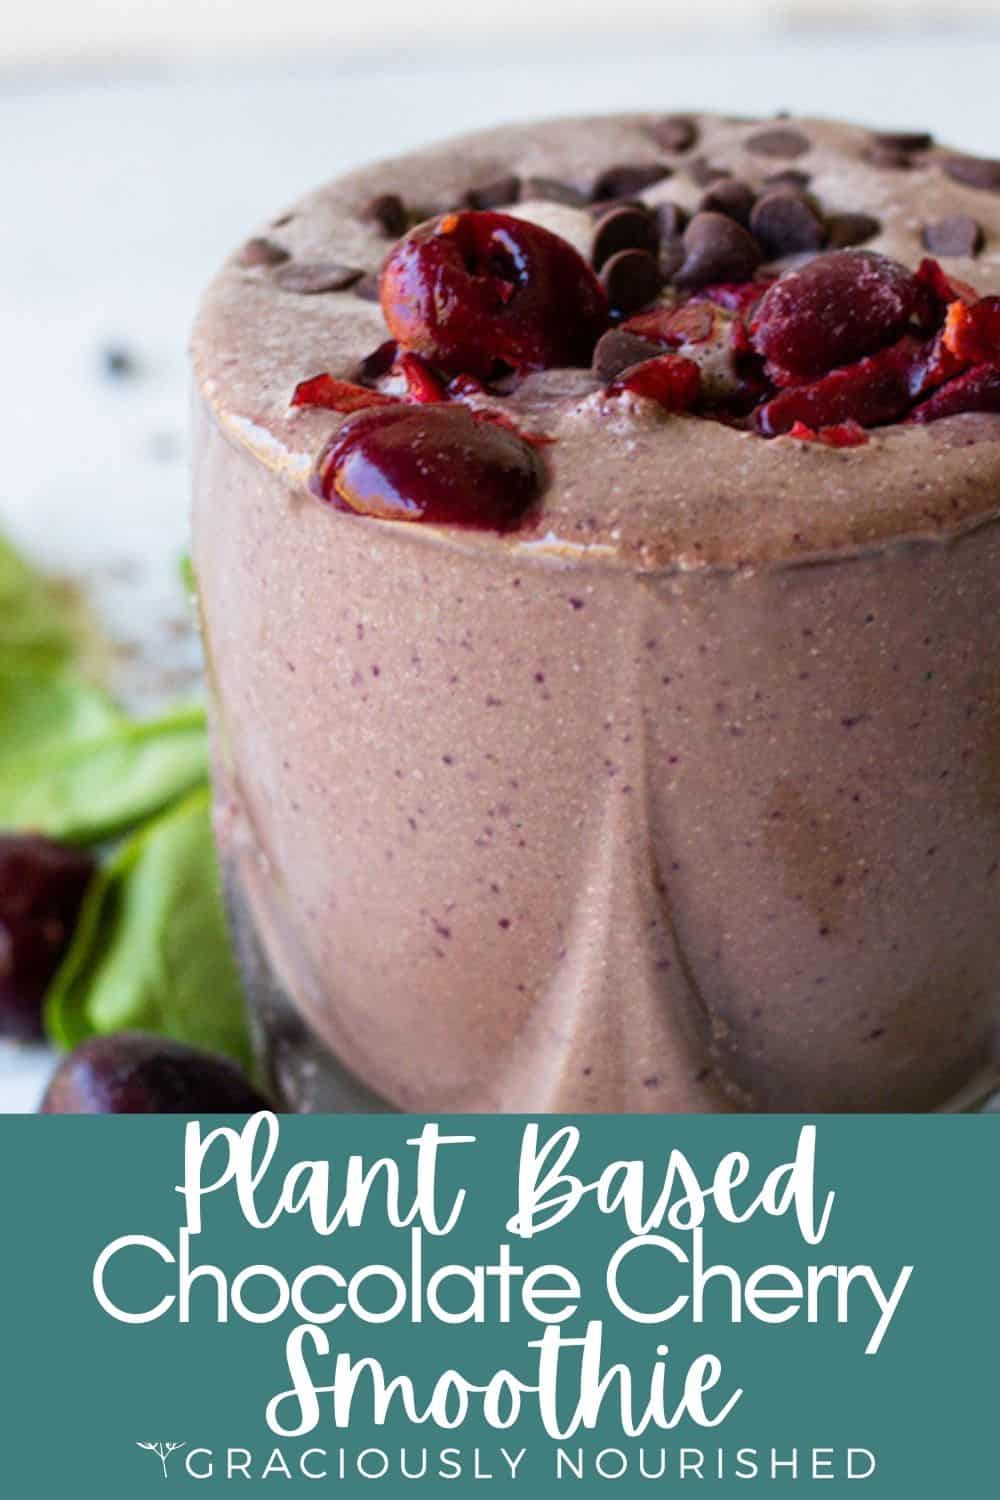 Image of smoothie garnished with cherries and chocolate chips | Plant Based Chocolate Cherry Smoothie